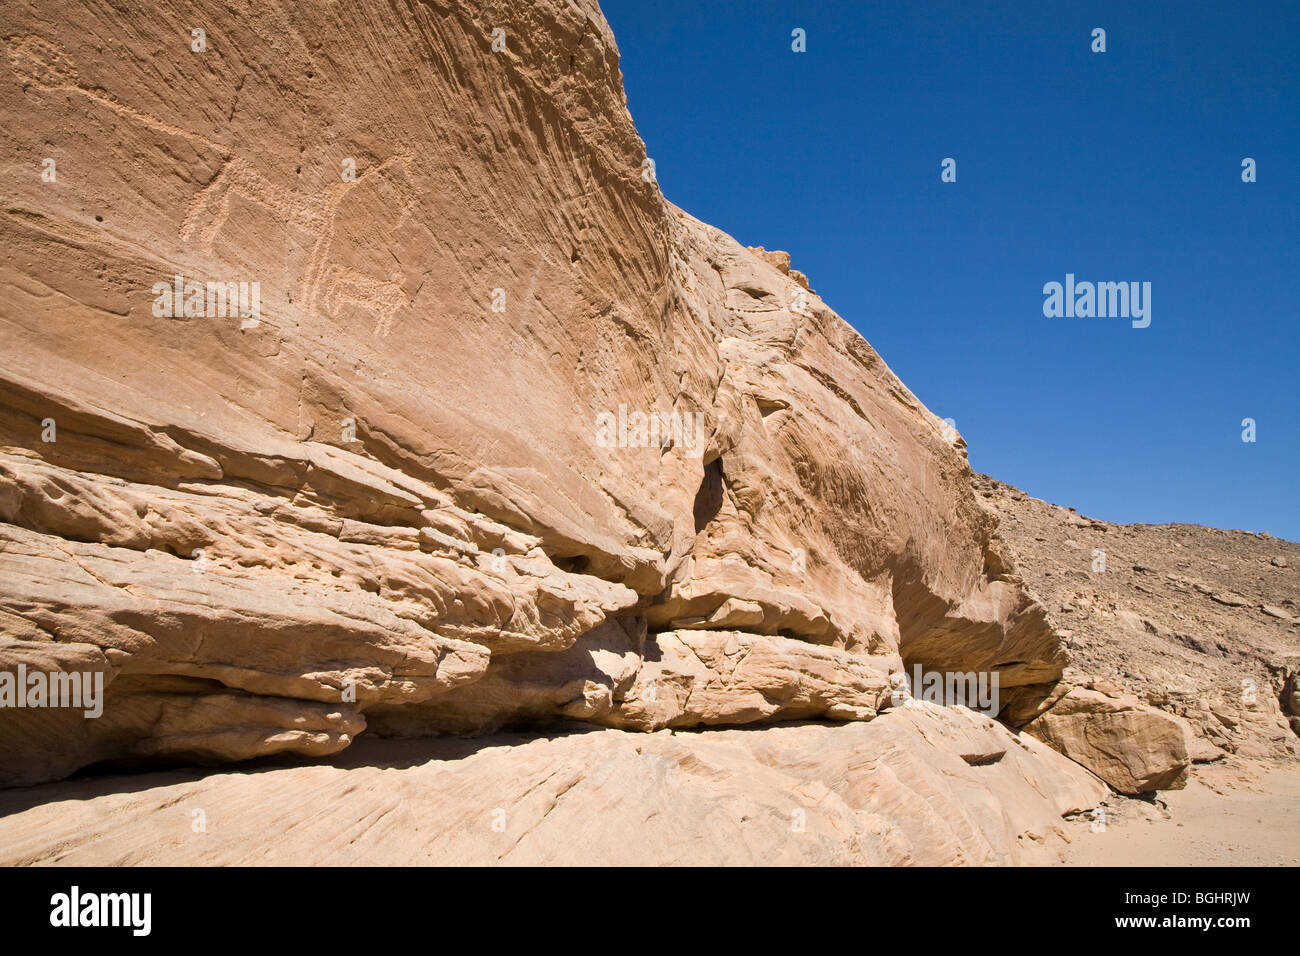 Wadi floor and cliff face showing ancient rock-art in the Eastern Desert of Egypt. - Stock Image